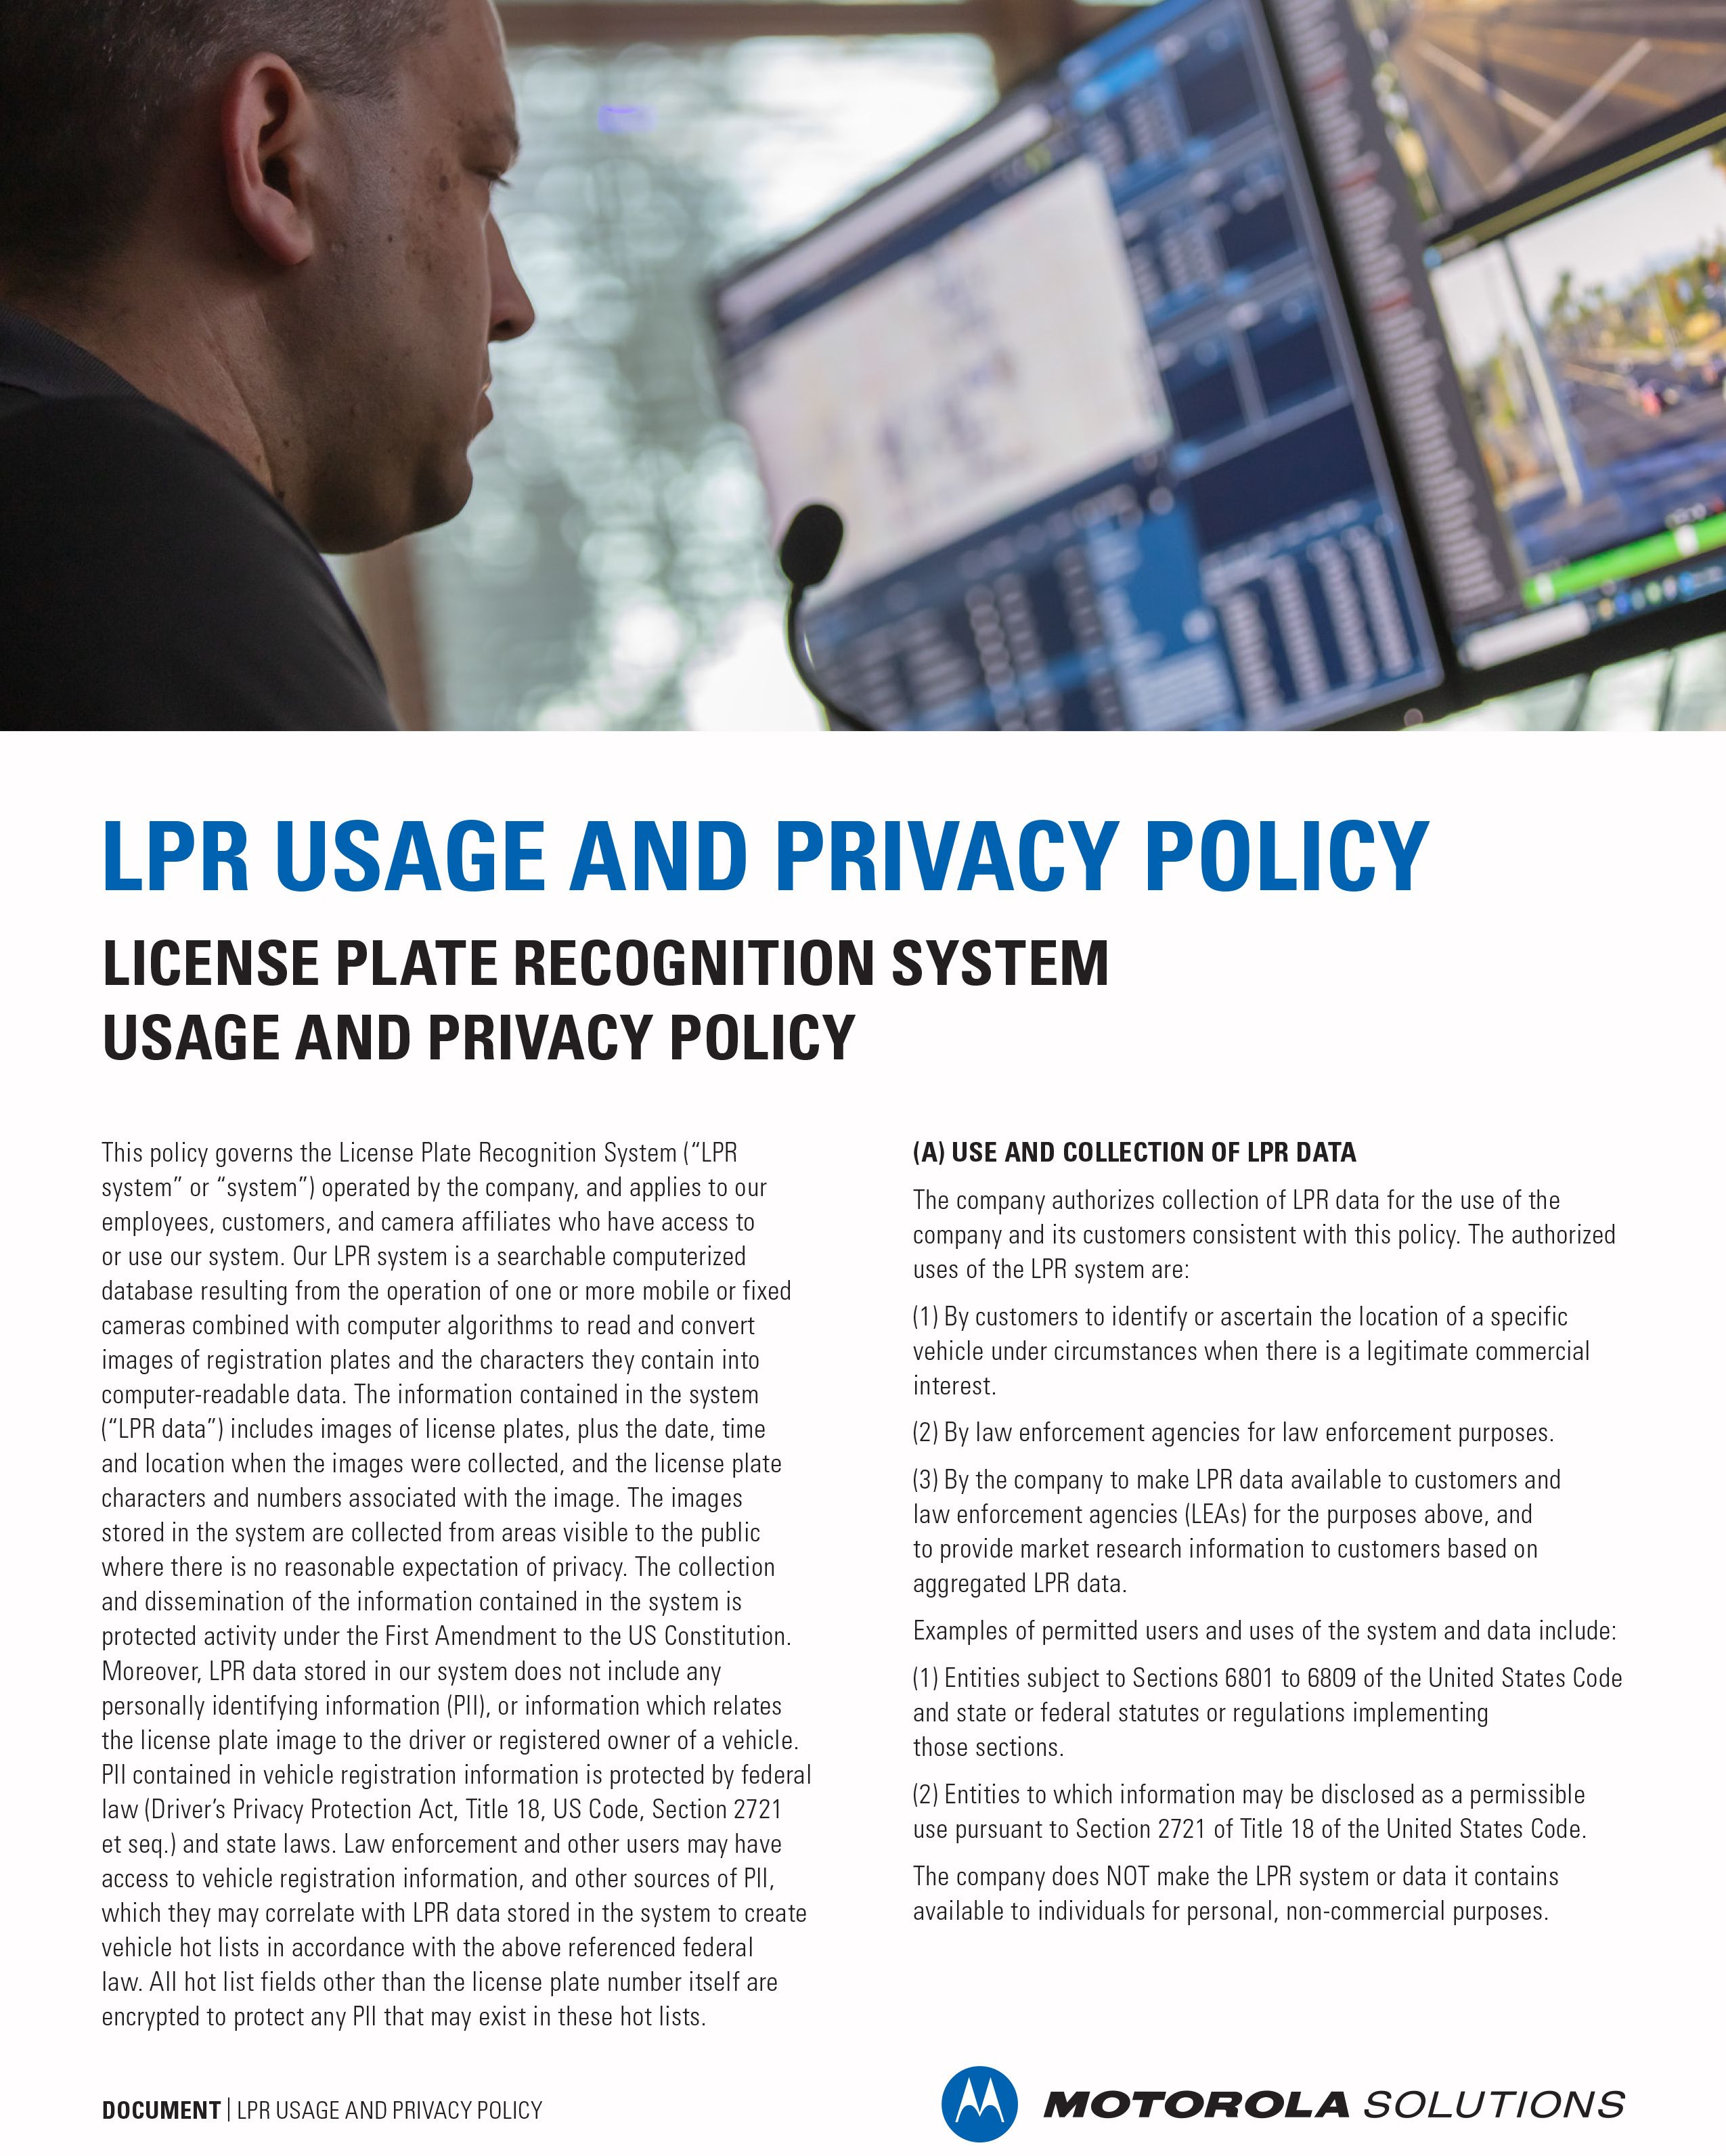 LPR Usage and Privacy Policy